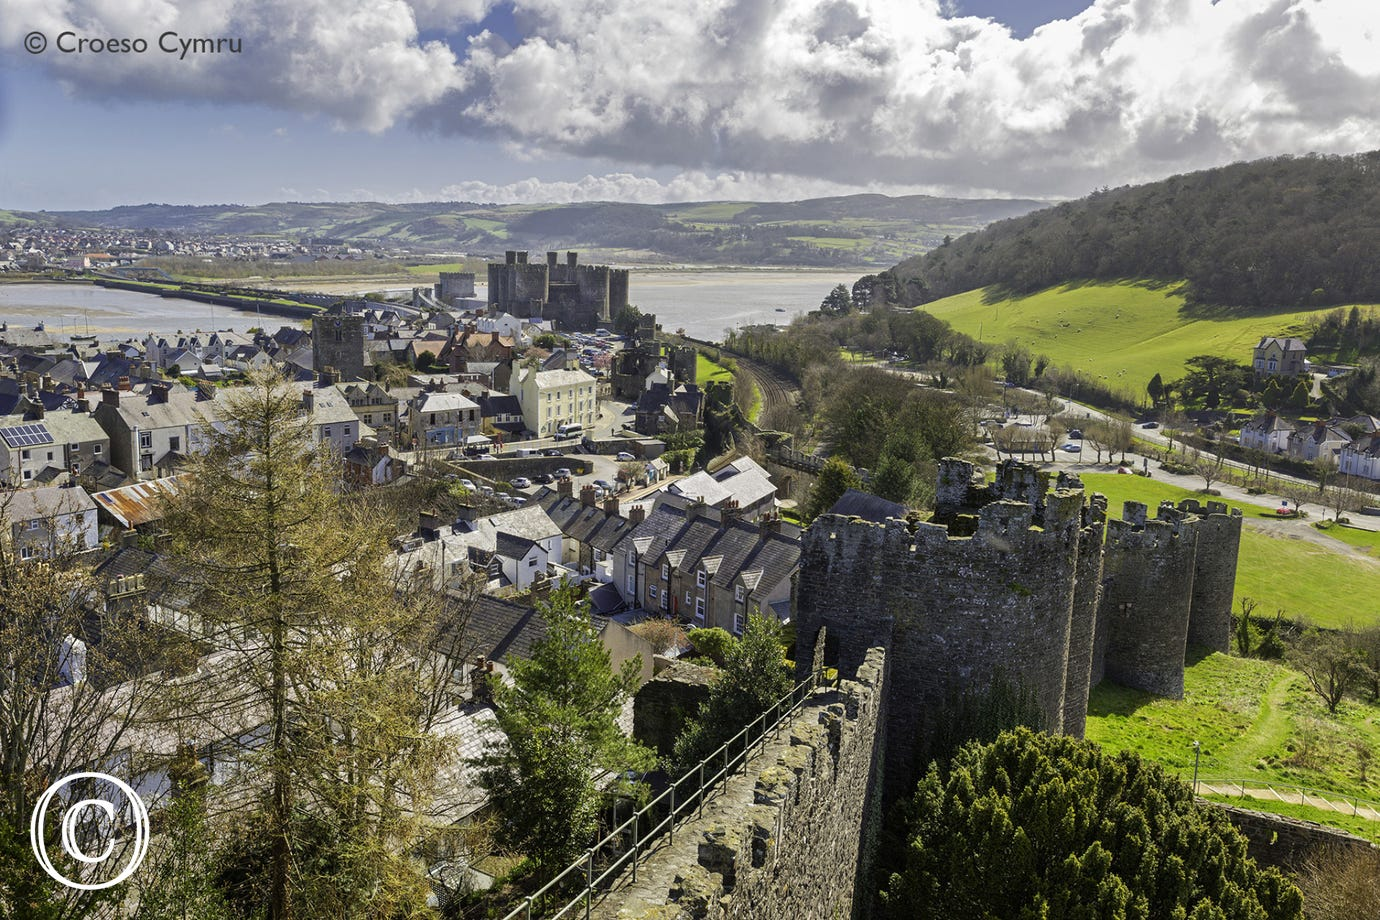 The walled, medieval town of Conwy